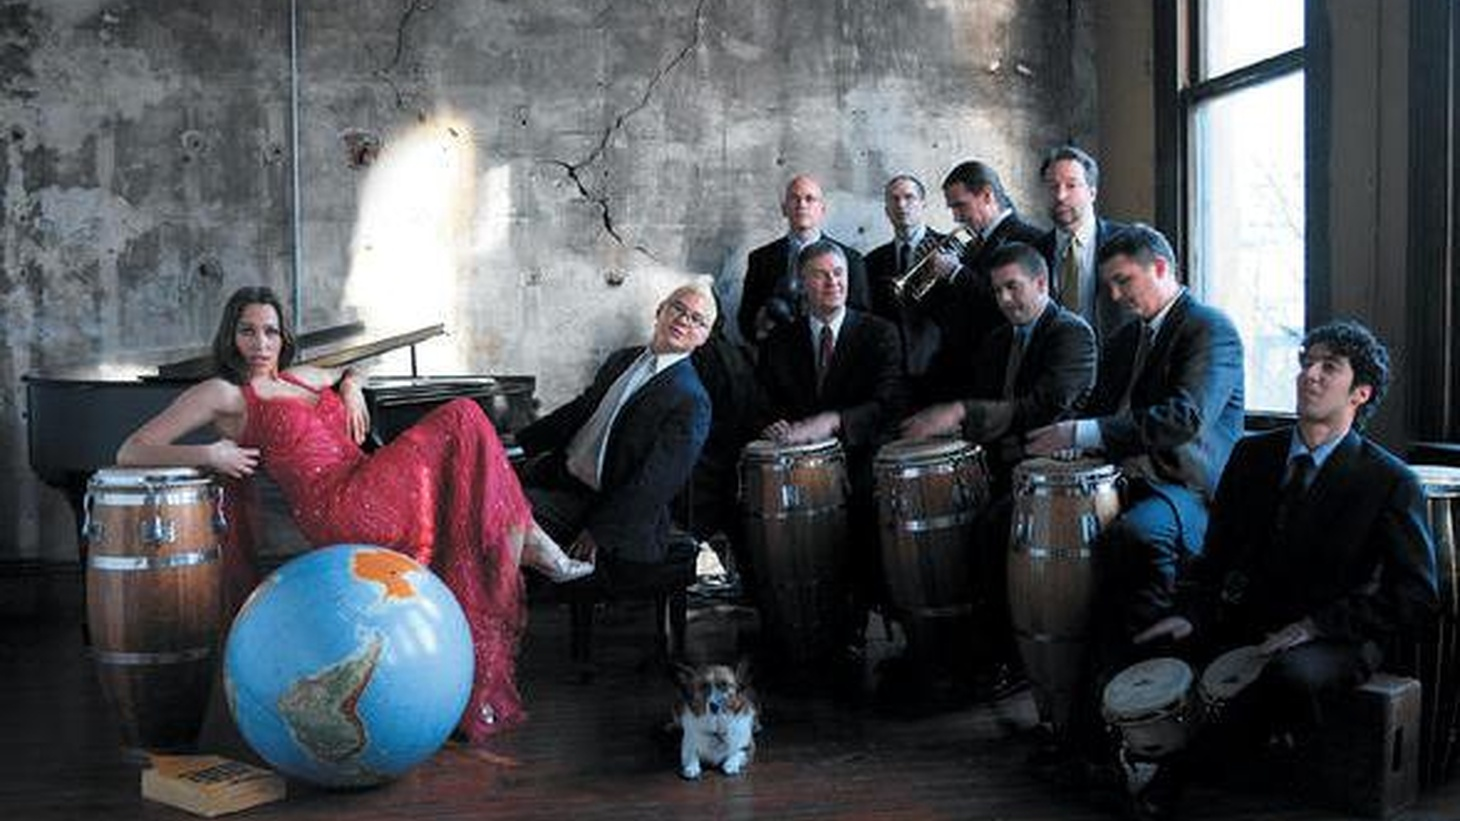 Pink Martini return to KCRW to perform an intoxicating mix scanning the world of music from cabaret to classical. We catch up with these station favorites at 11:15am.